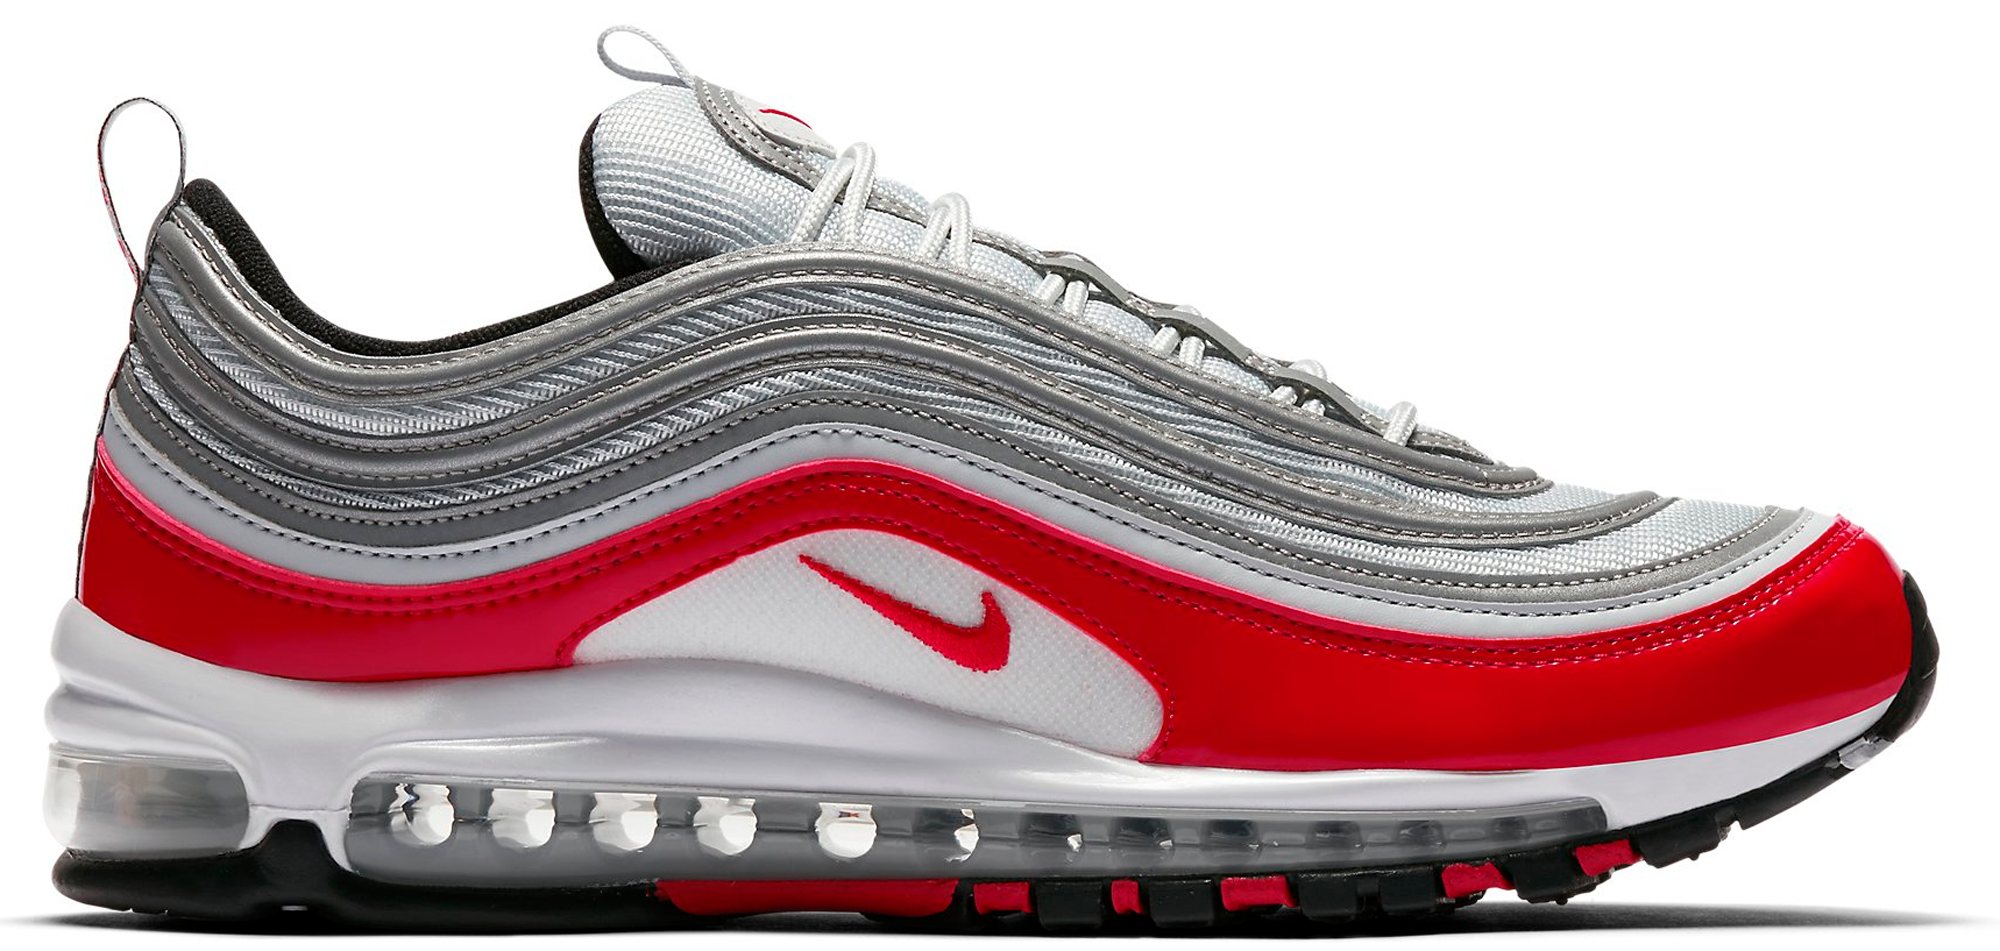 9abba8d14c ... black mens casual trainers promo code for air max 97 pure platinum  university red 6229c d7988 france image is loading nike ...